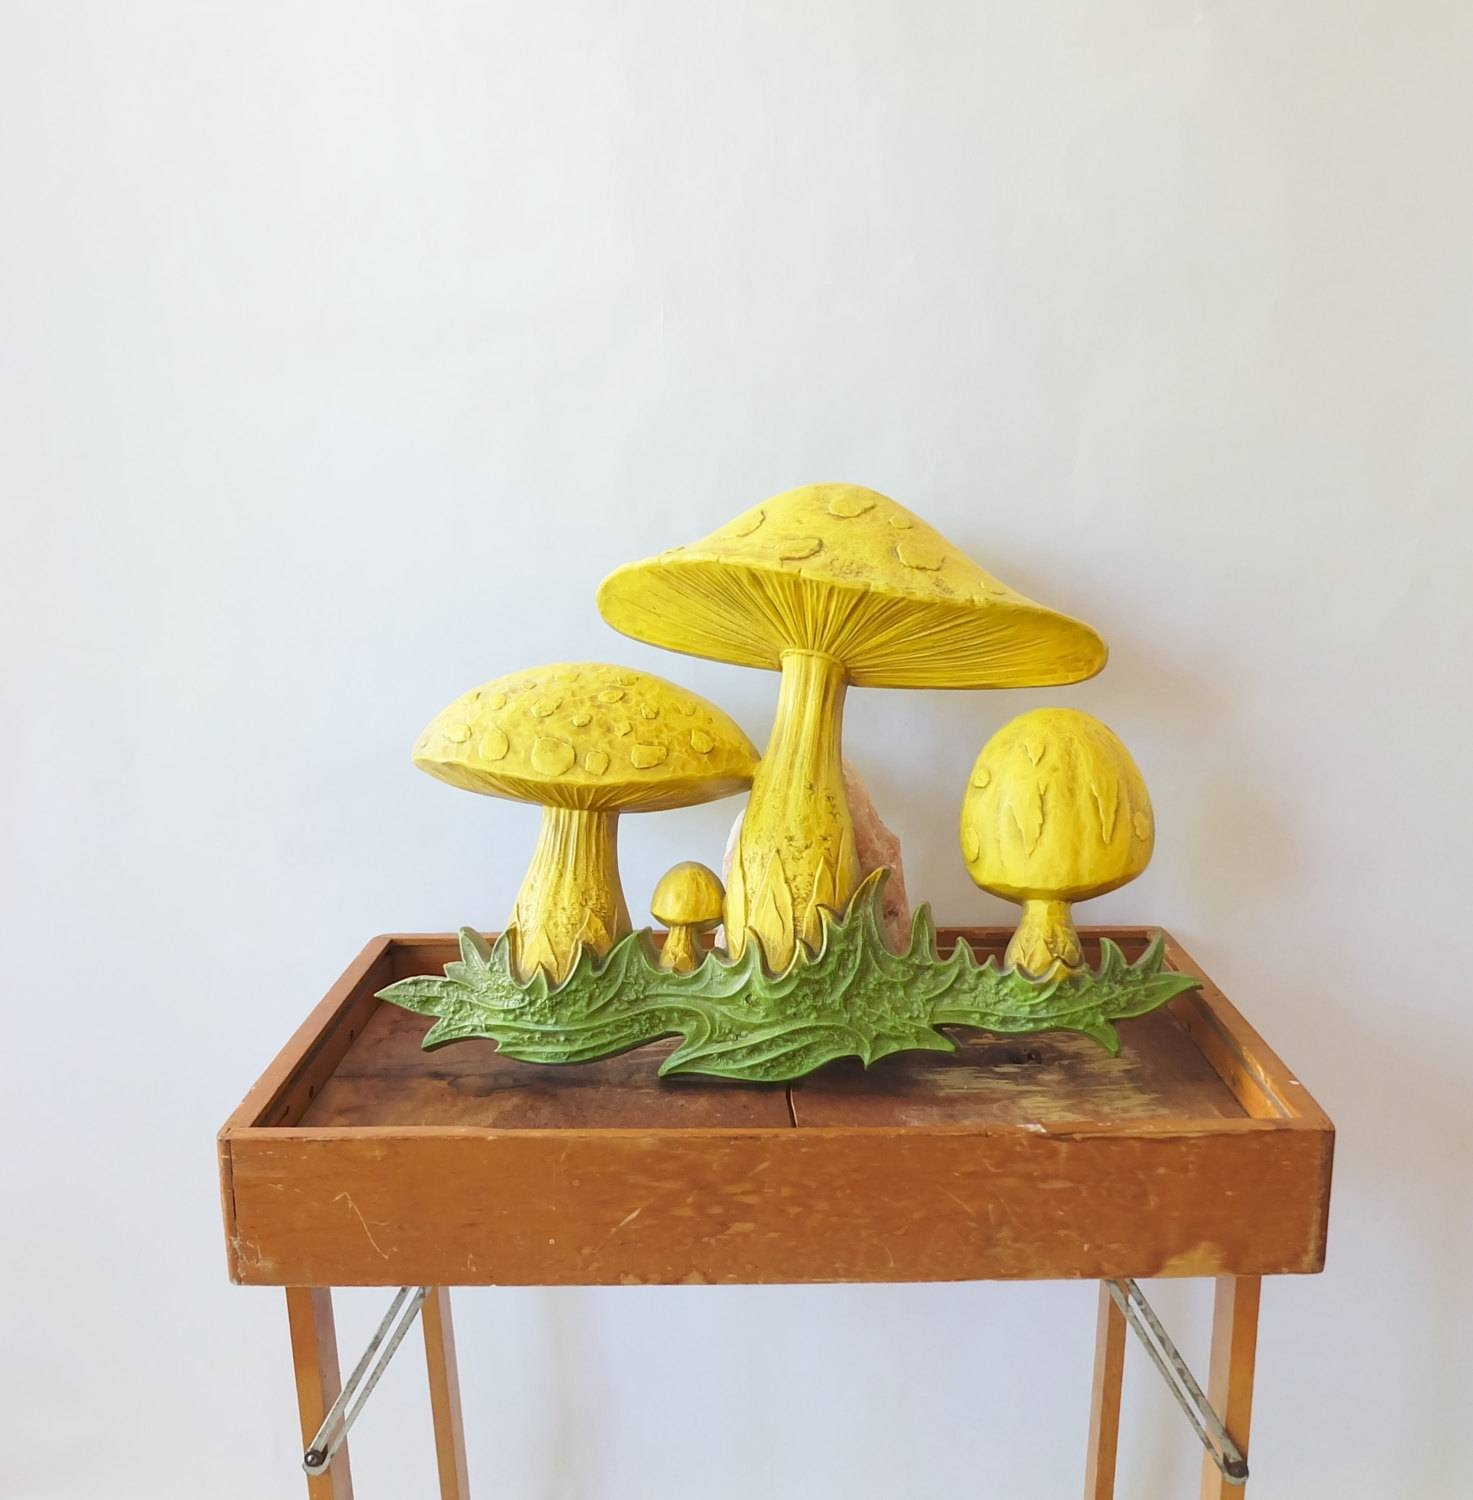 Retro 1960S 1970S Vintage Mushroom Wall Hanging, Retro Wall Art Inside Best And Newest Mushroom Wall Art (View 6 of 20)